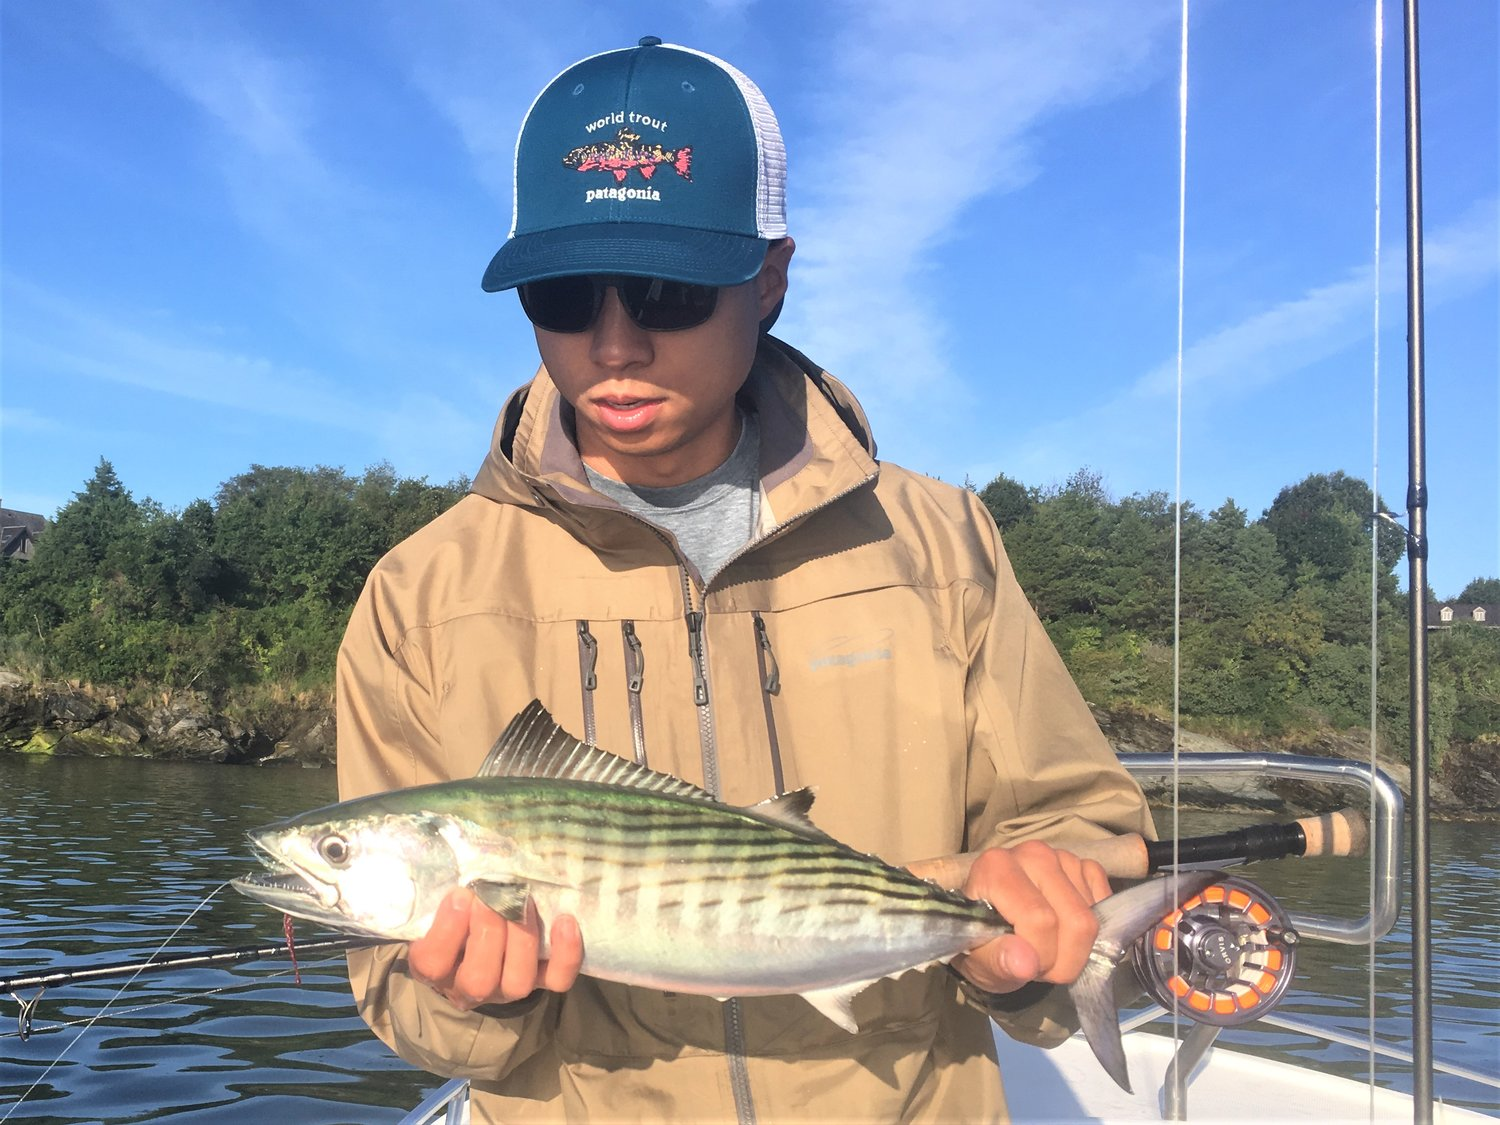 RI Slam: Mason Yeh, Connecticut, with a bonito he caught off Newport saltwater fly fishing with Capt. Rene Letourneau of On The Rocks Charters. Yeh caught a striped bass and bluefish the same day too.